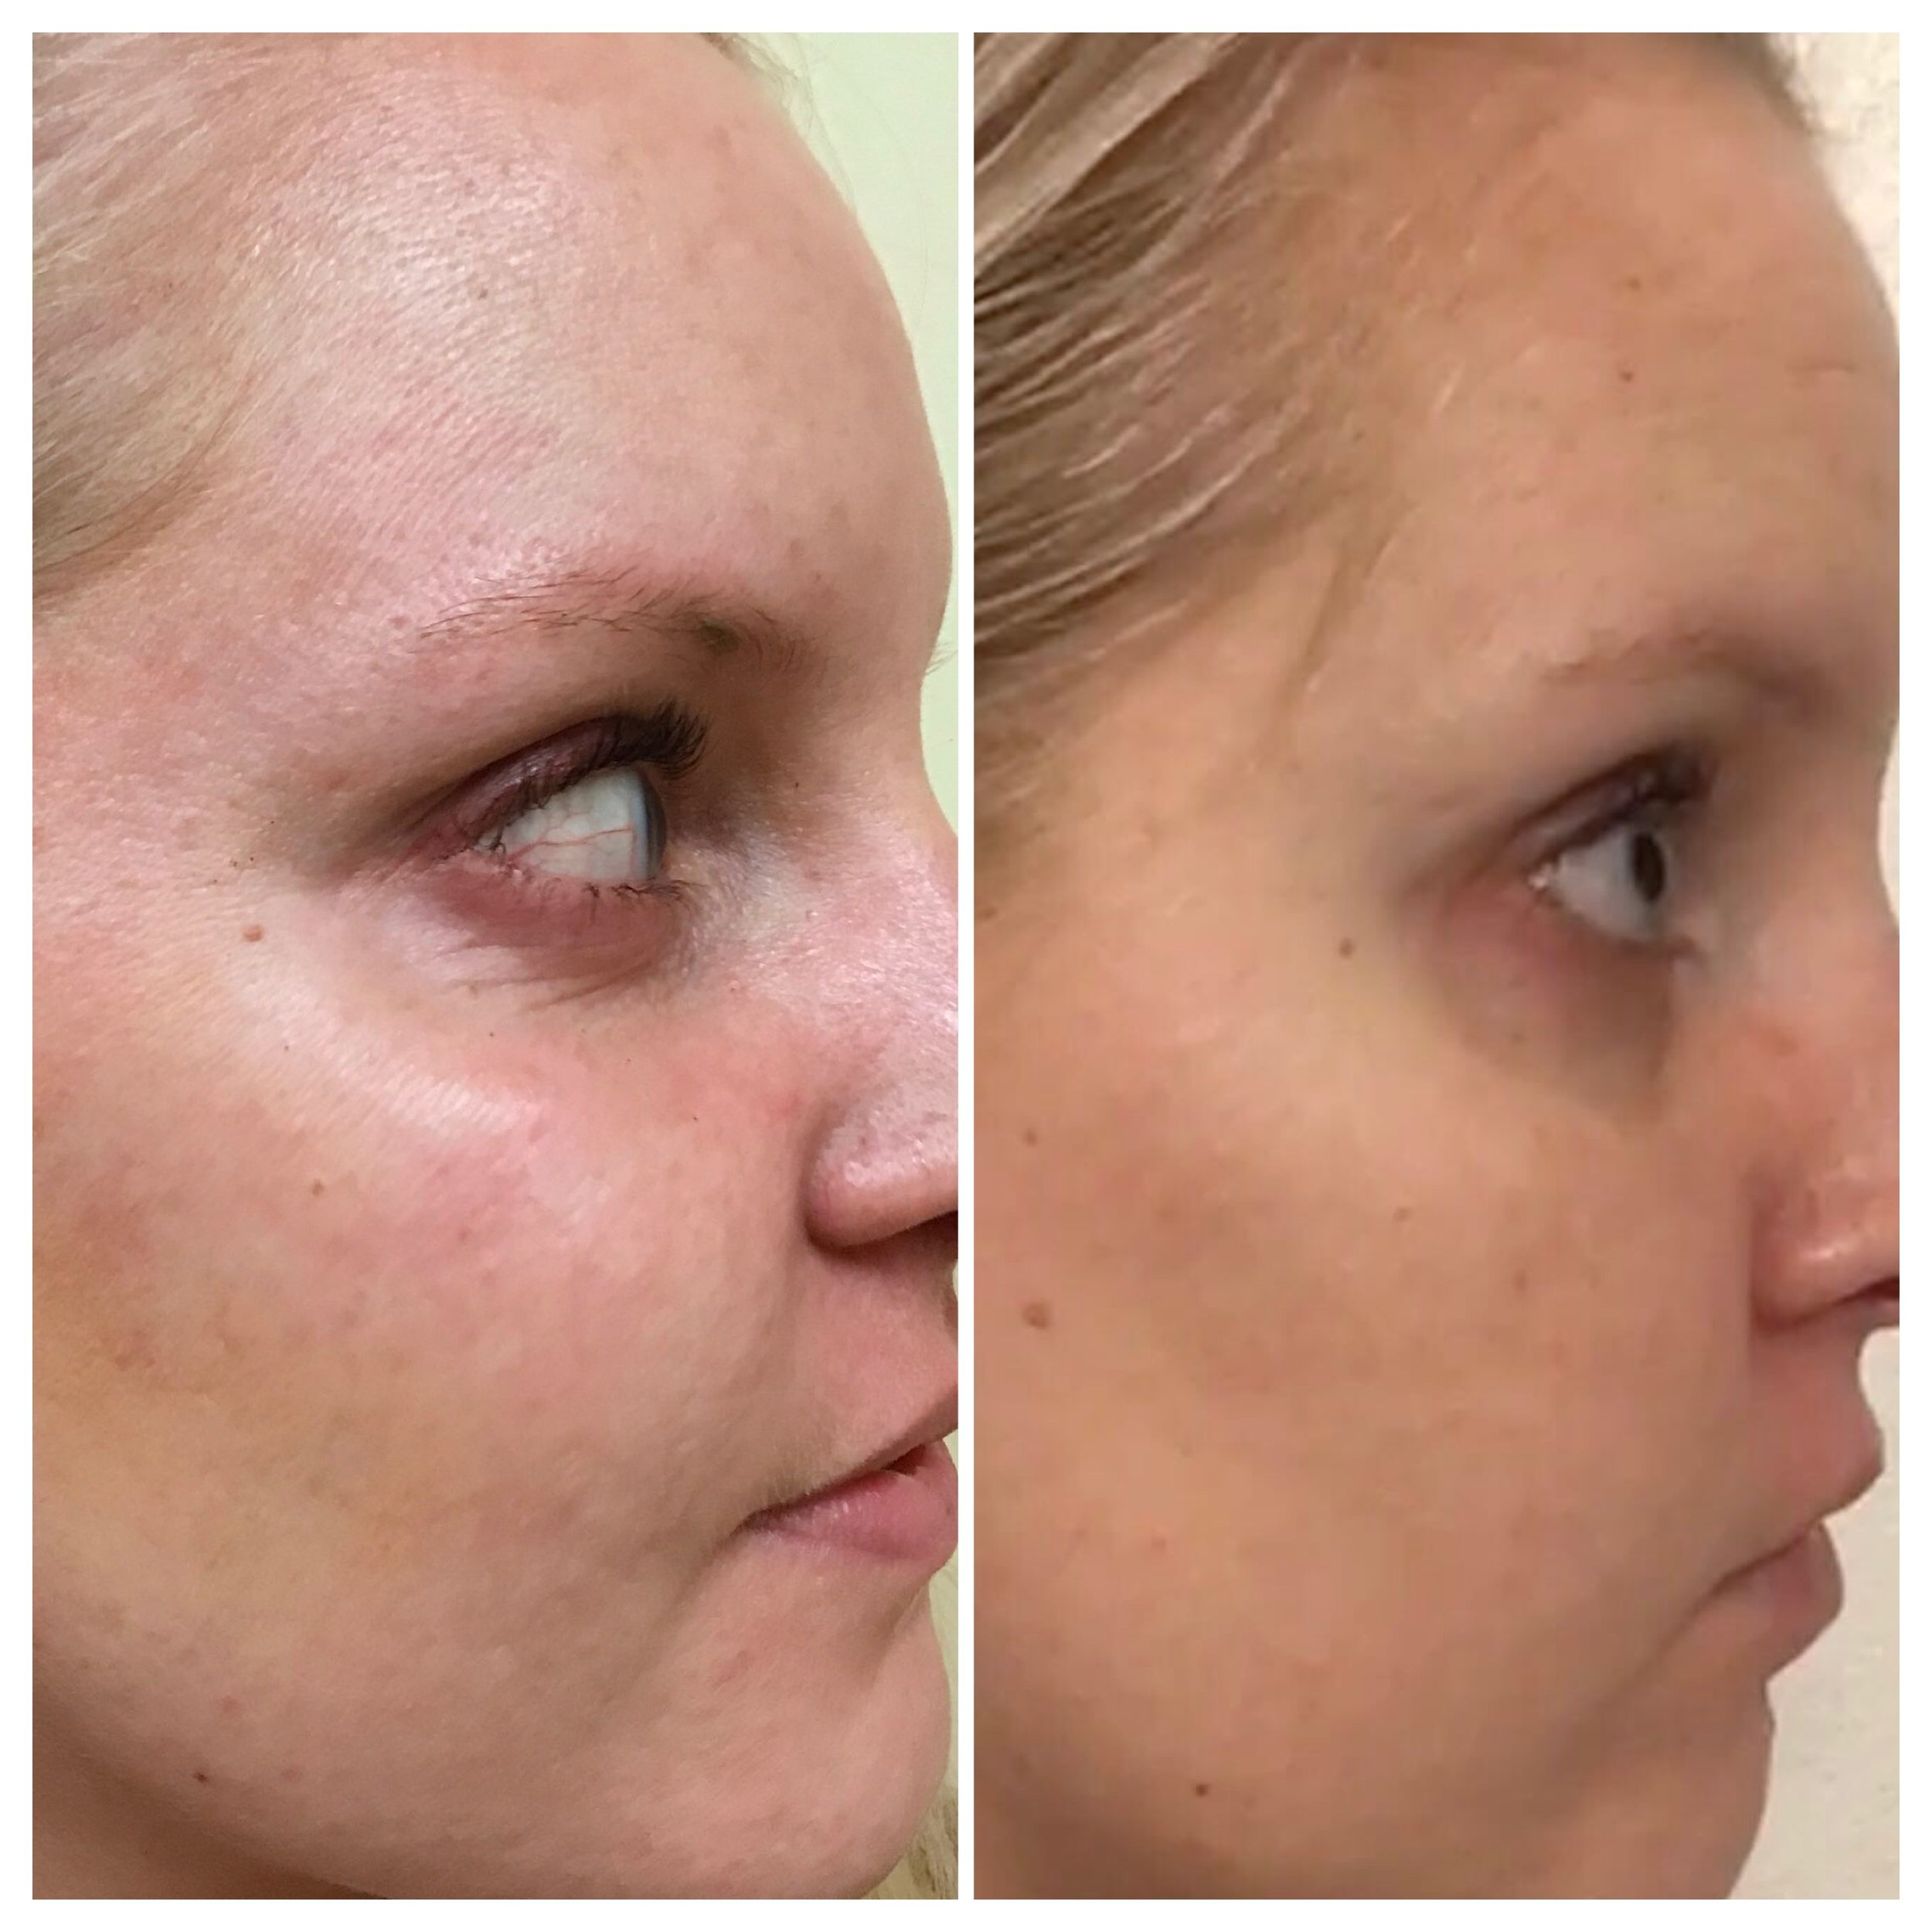 Microneedling with PRP, 2 weeks later